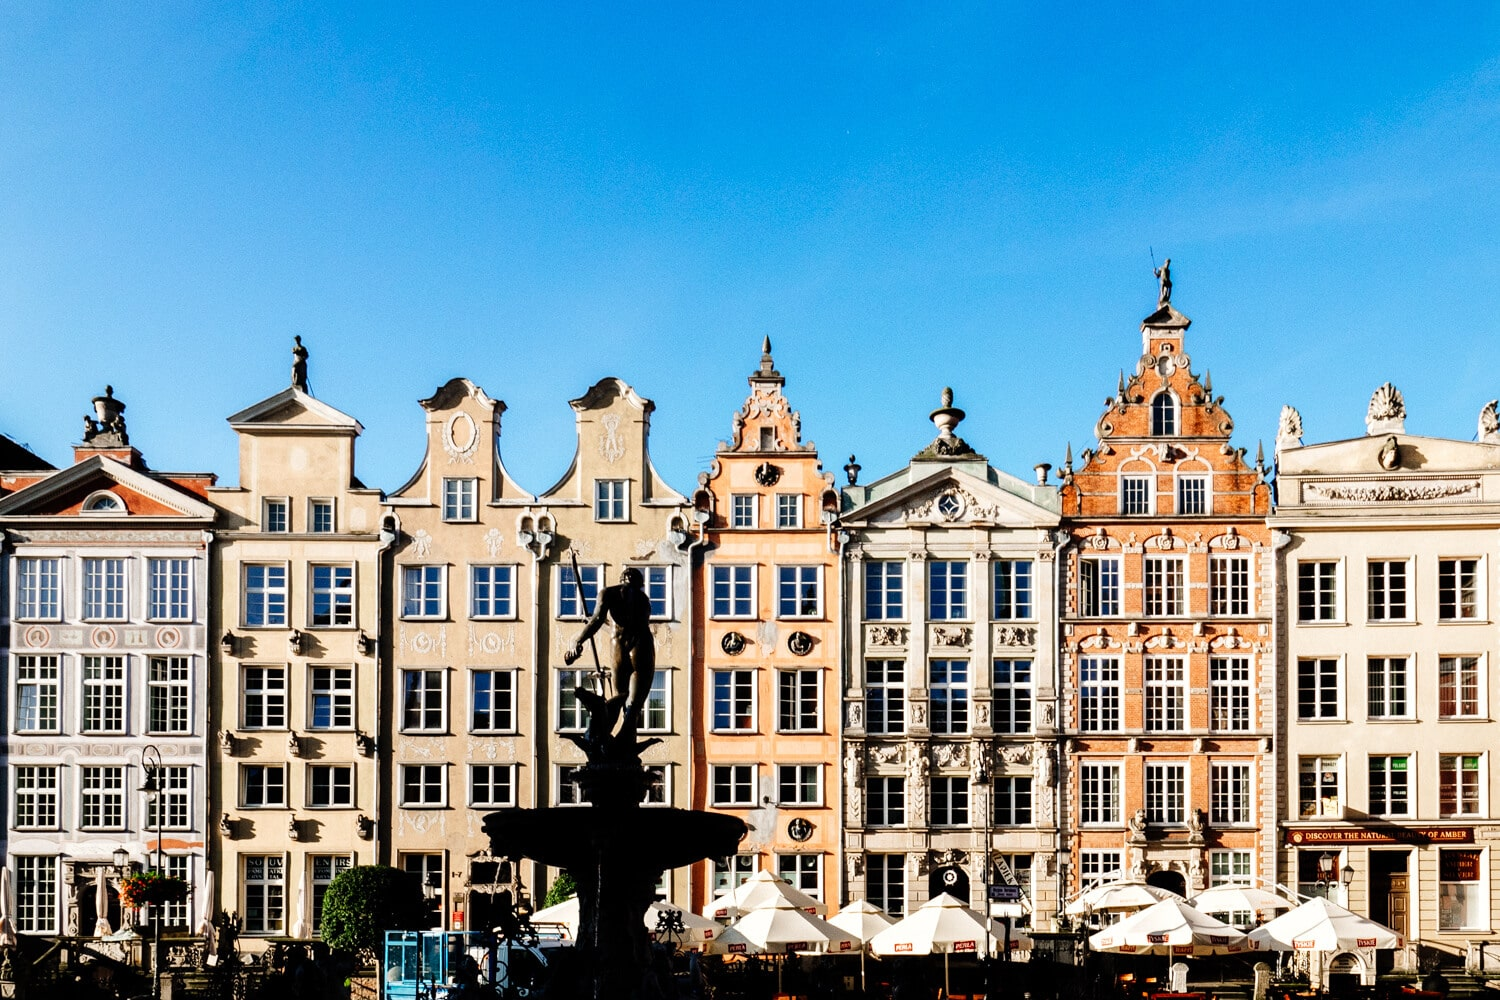 The triangular gable roof tops of Gdansk. A feature of the city.